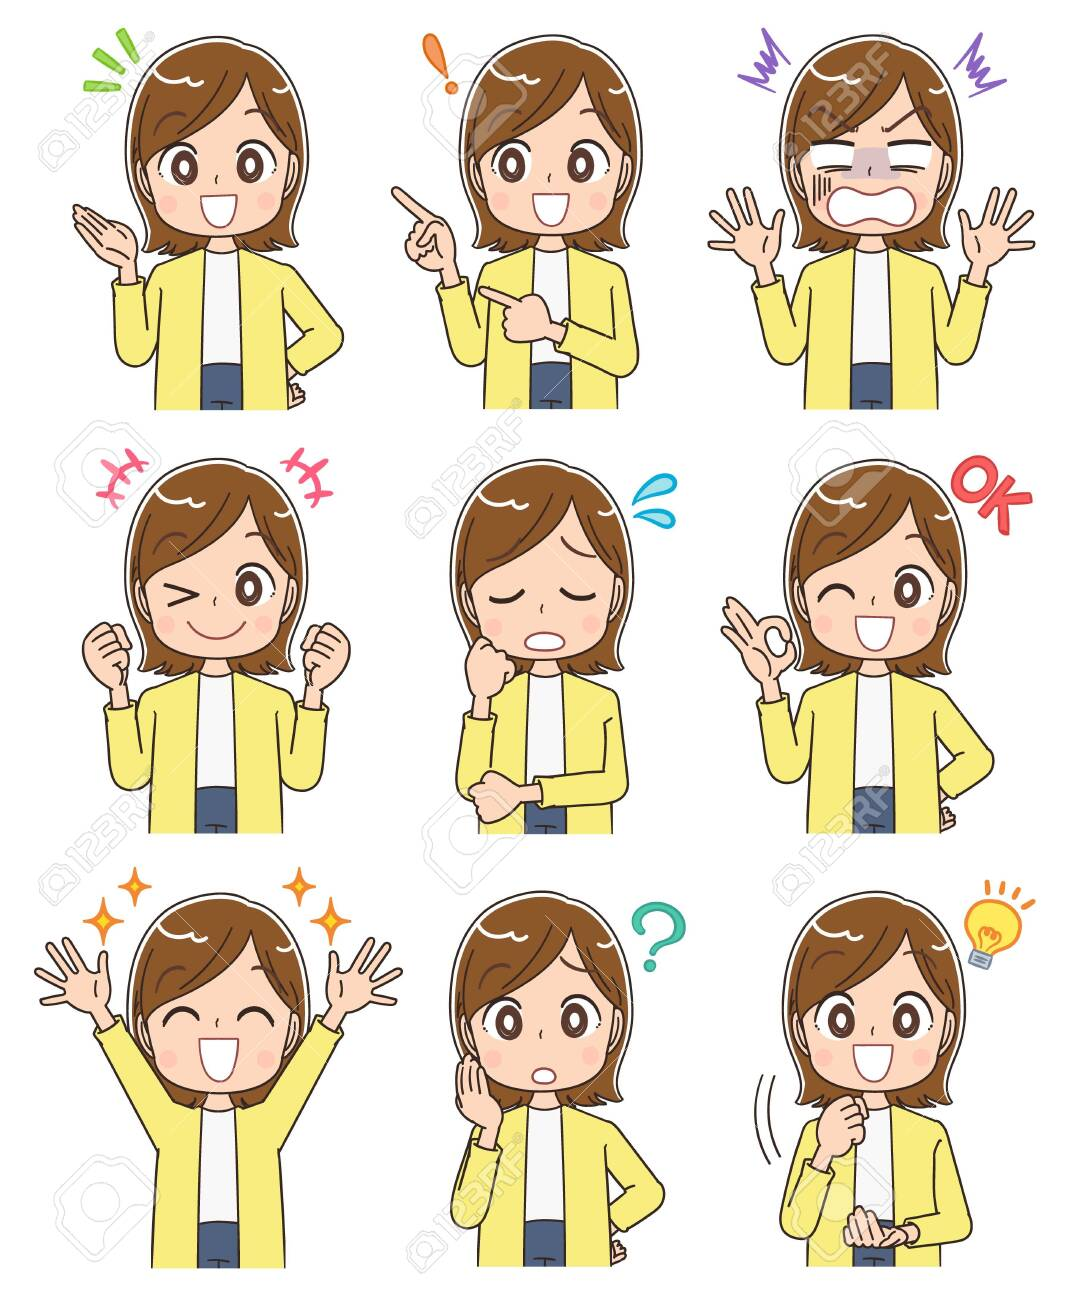 Young woman wearing a yellow cardigan.She has various expressions. - 140798202